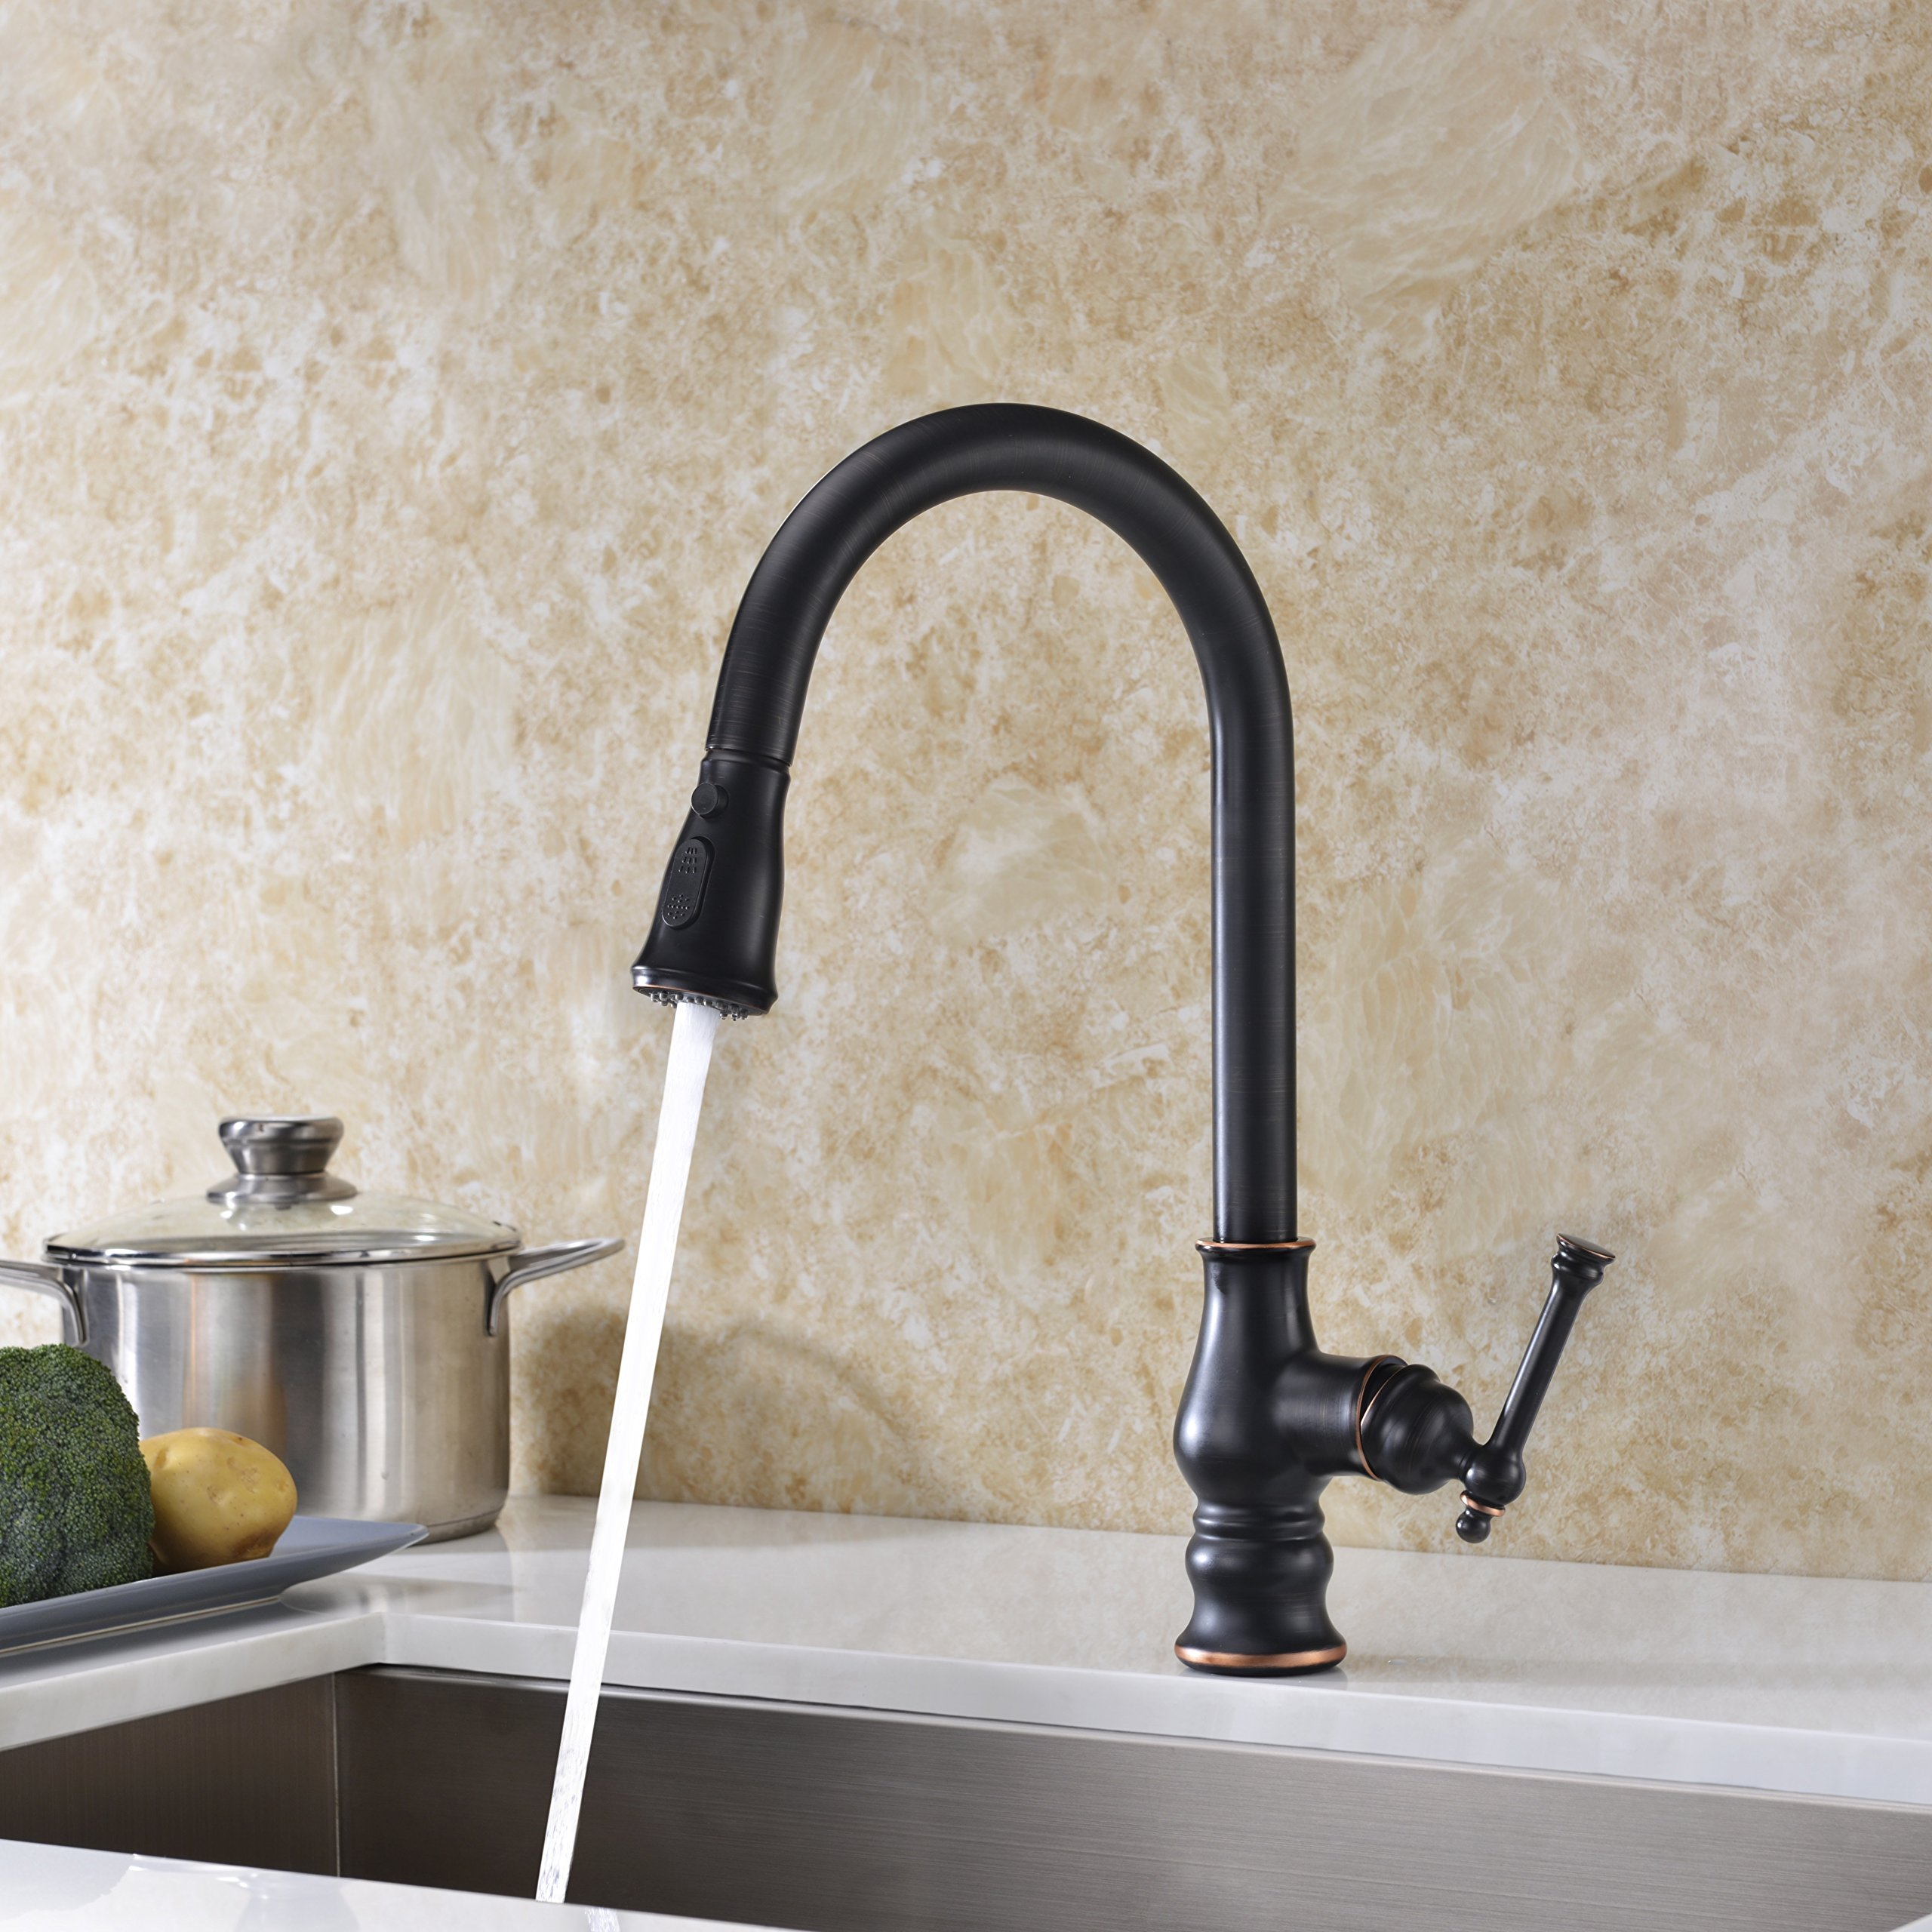 Kitchen Faucet with Pull Out Sprayer Delle Rosa Solid Brass Single Handle High Arc 360 Degree Swivel Pre-rinse Kitchen Sink Faucet Oil Rubbed Bronze by Delle Rosa (Image #4)